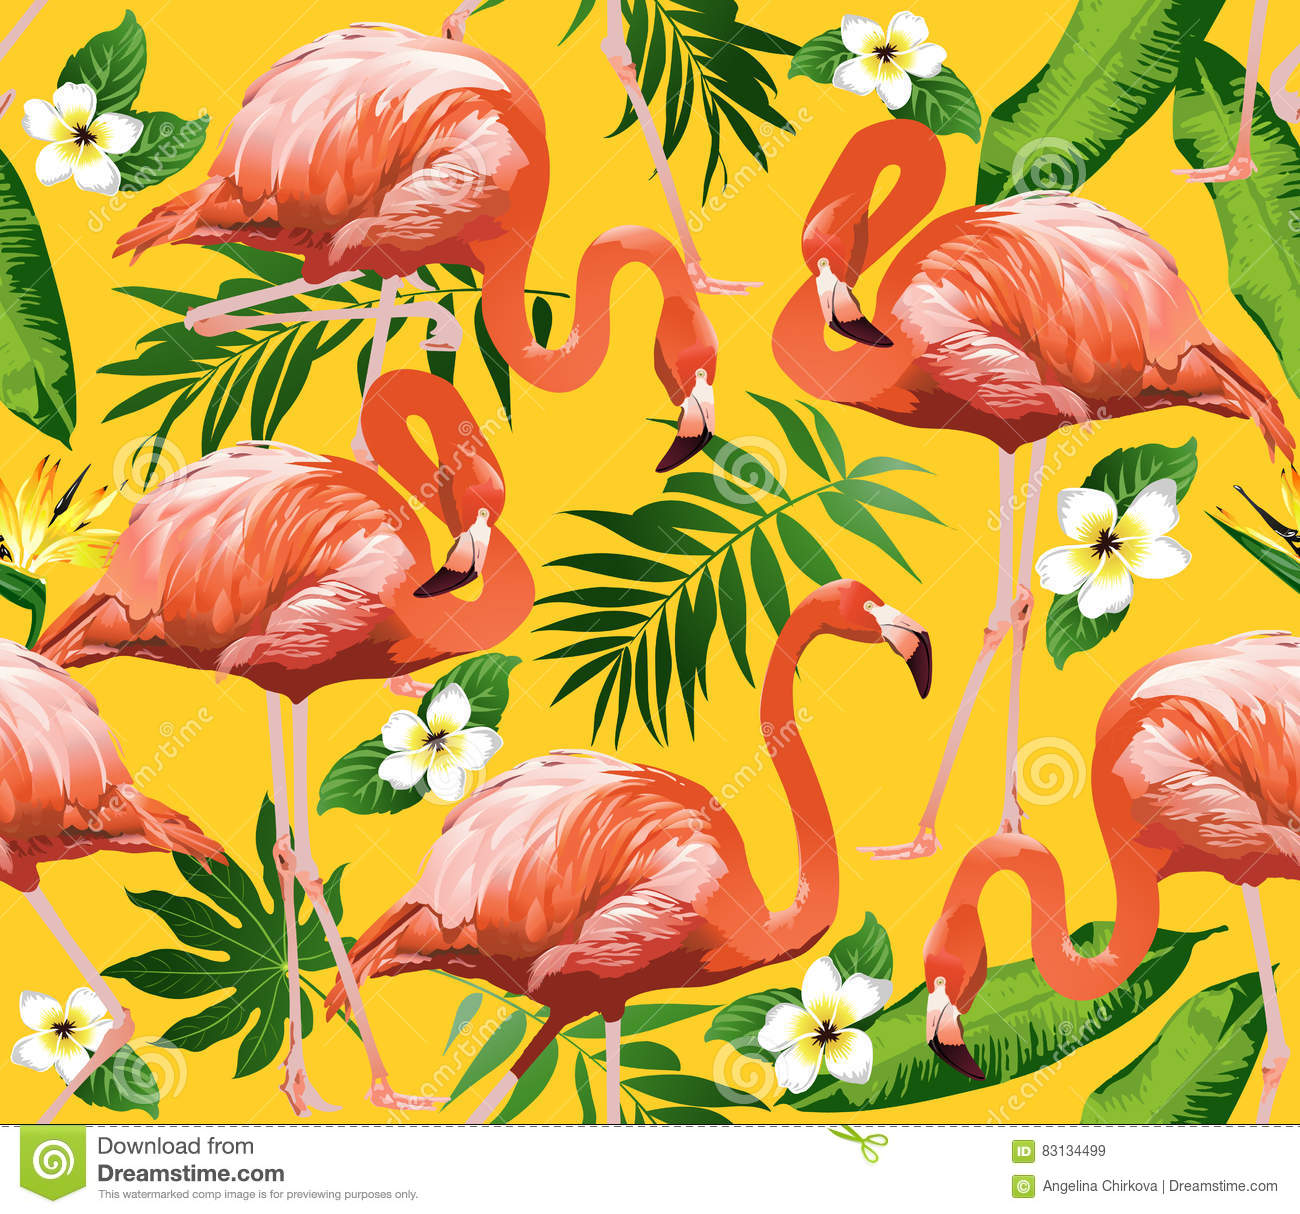 Flamingo Bird and Tropical Flowers Background